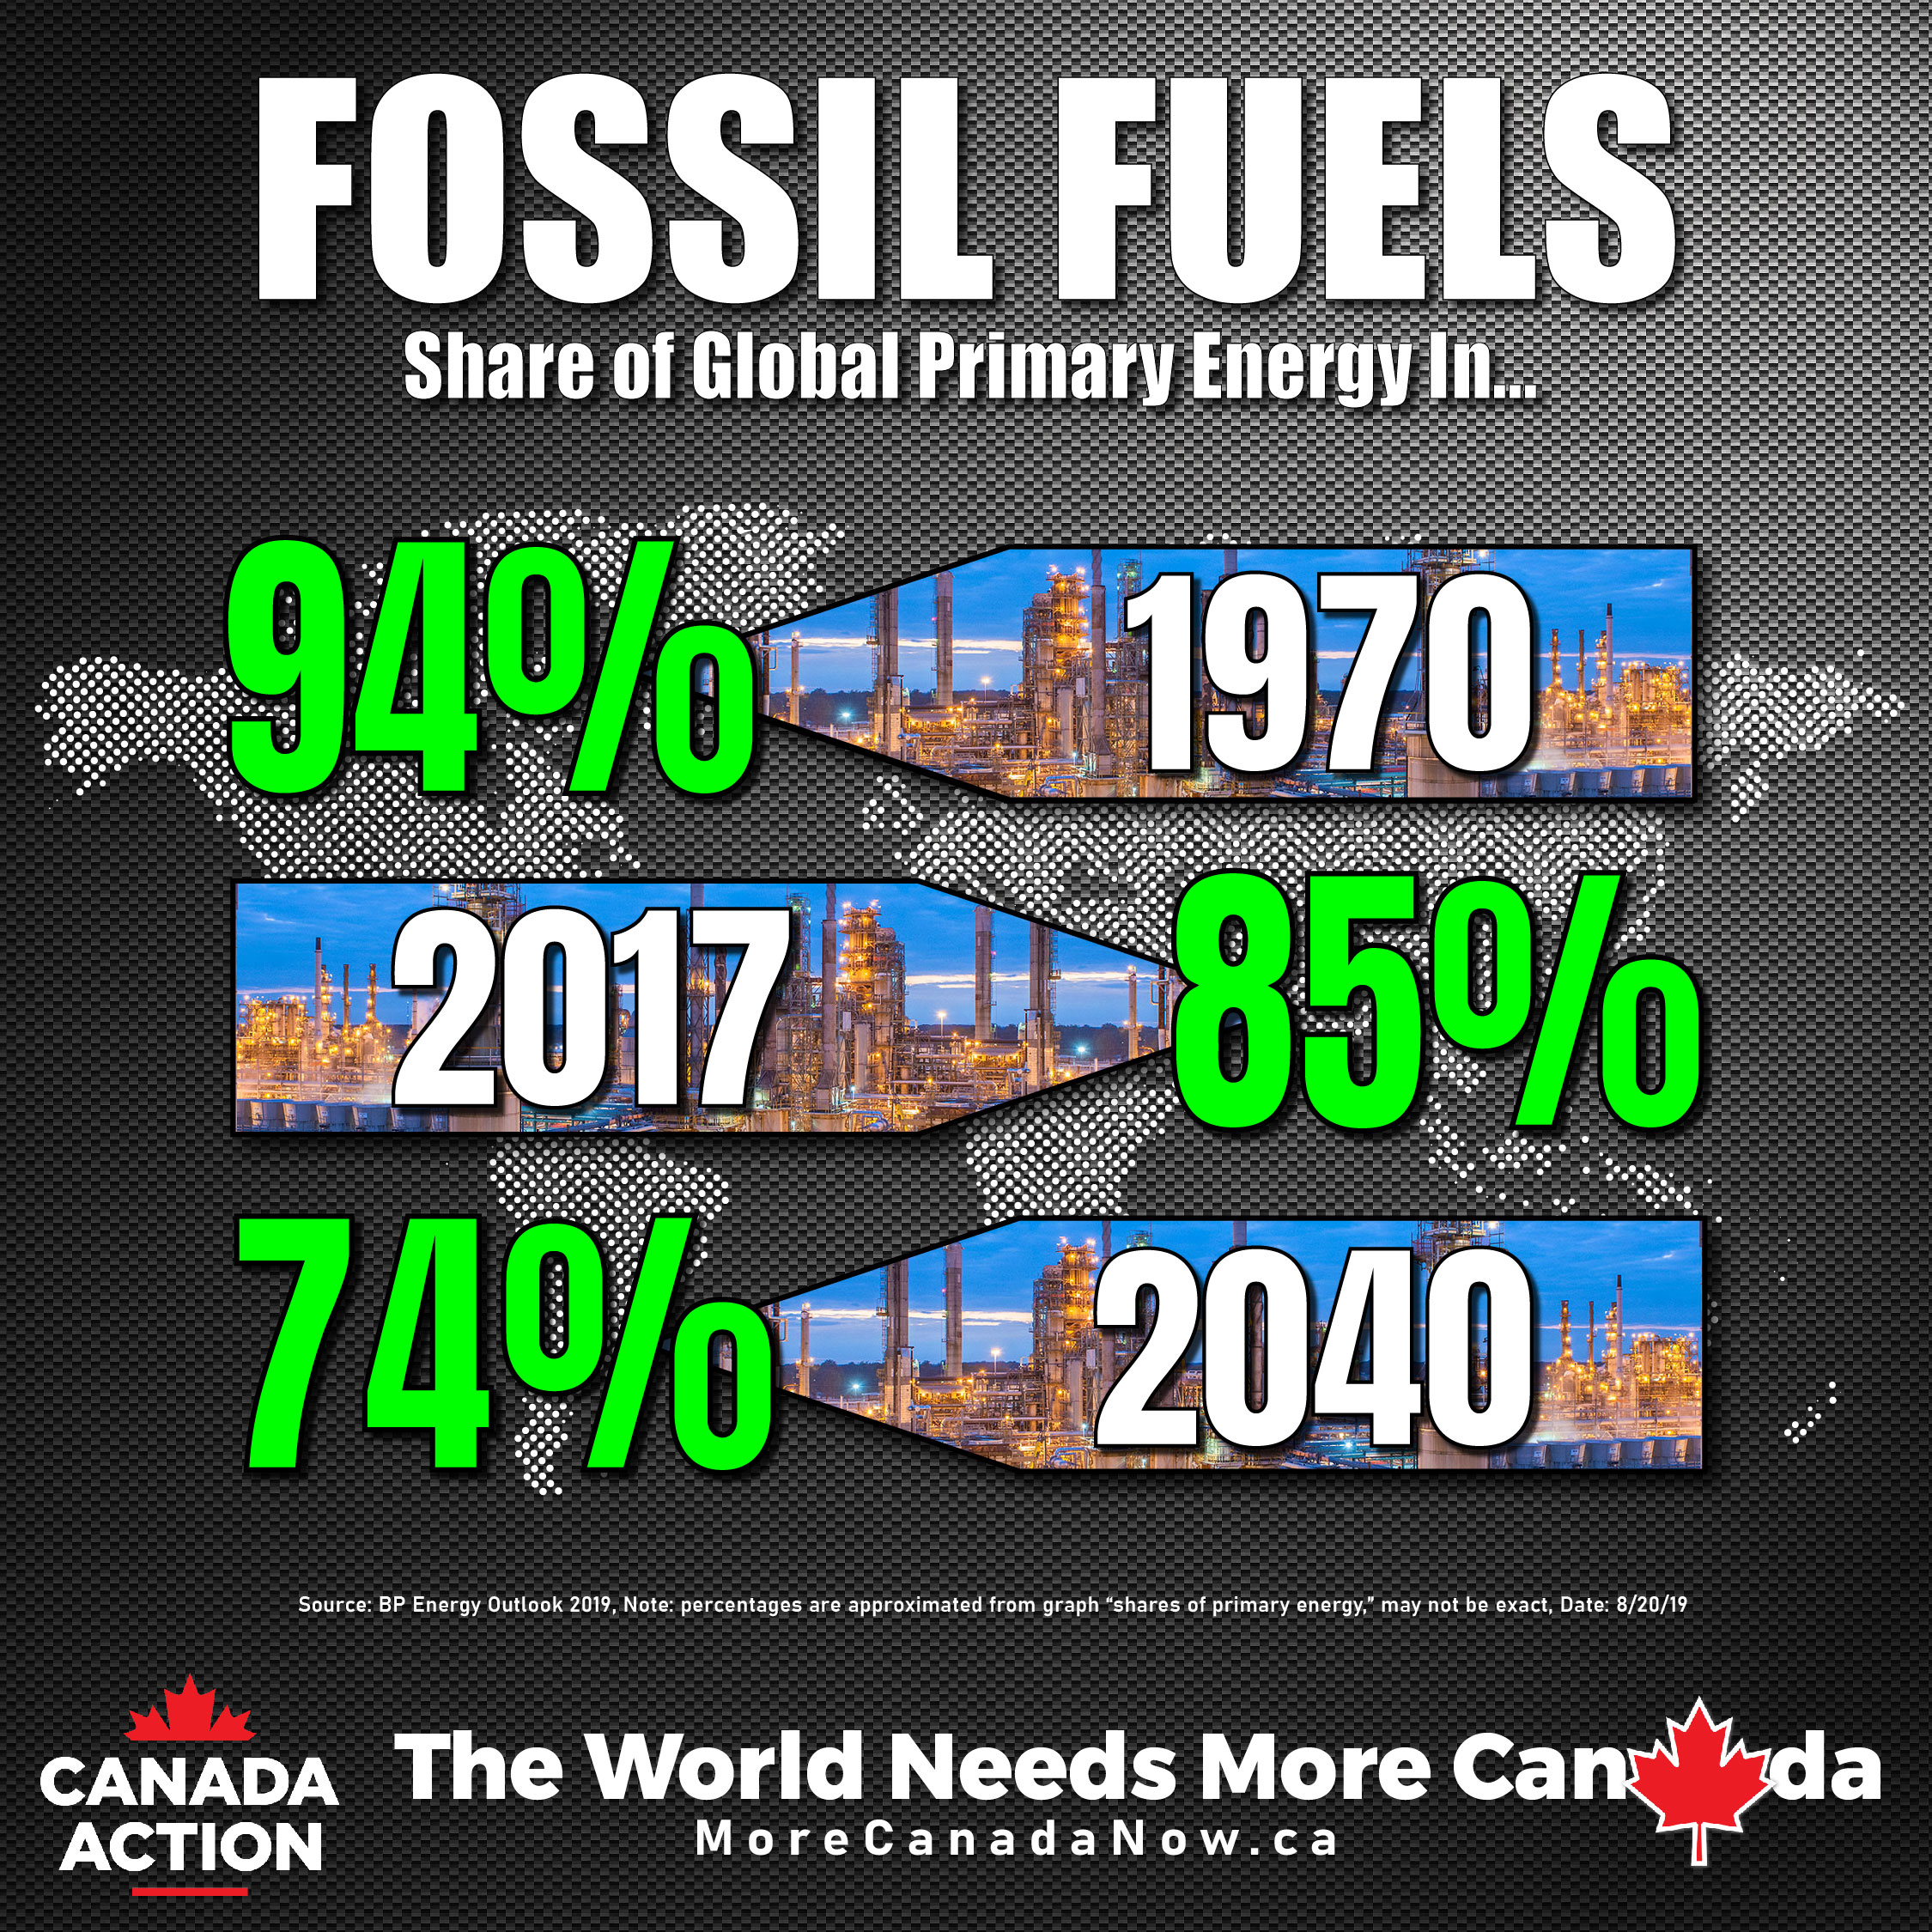 Fossil Fuel Demand by 2040 - BP World Energy Outlook 2019